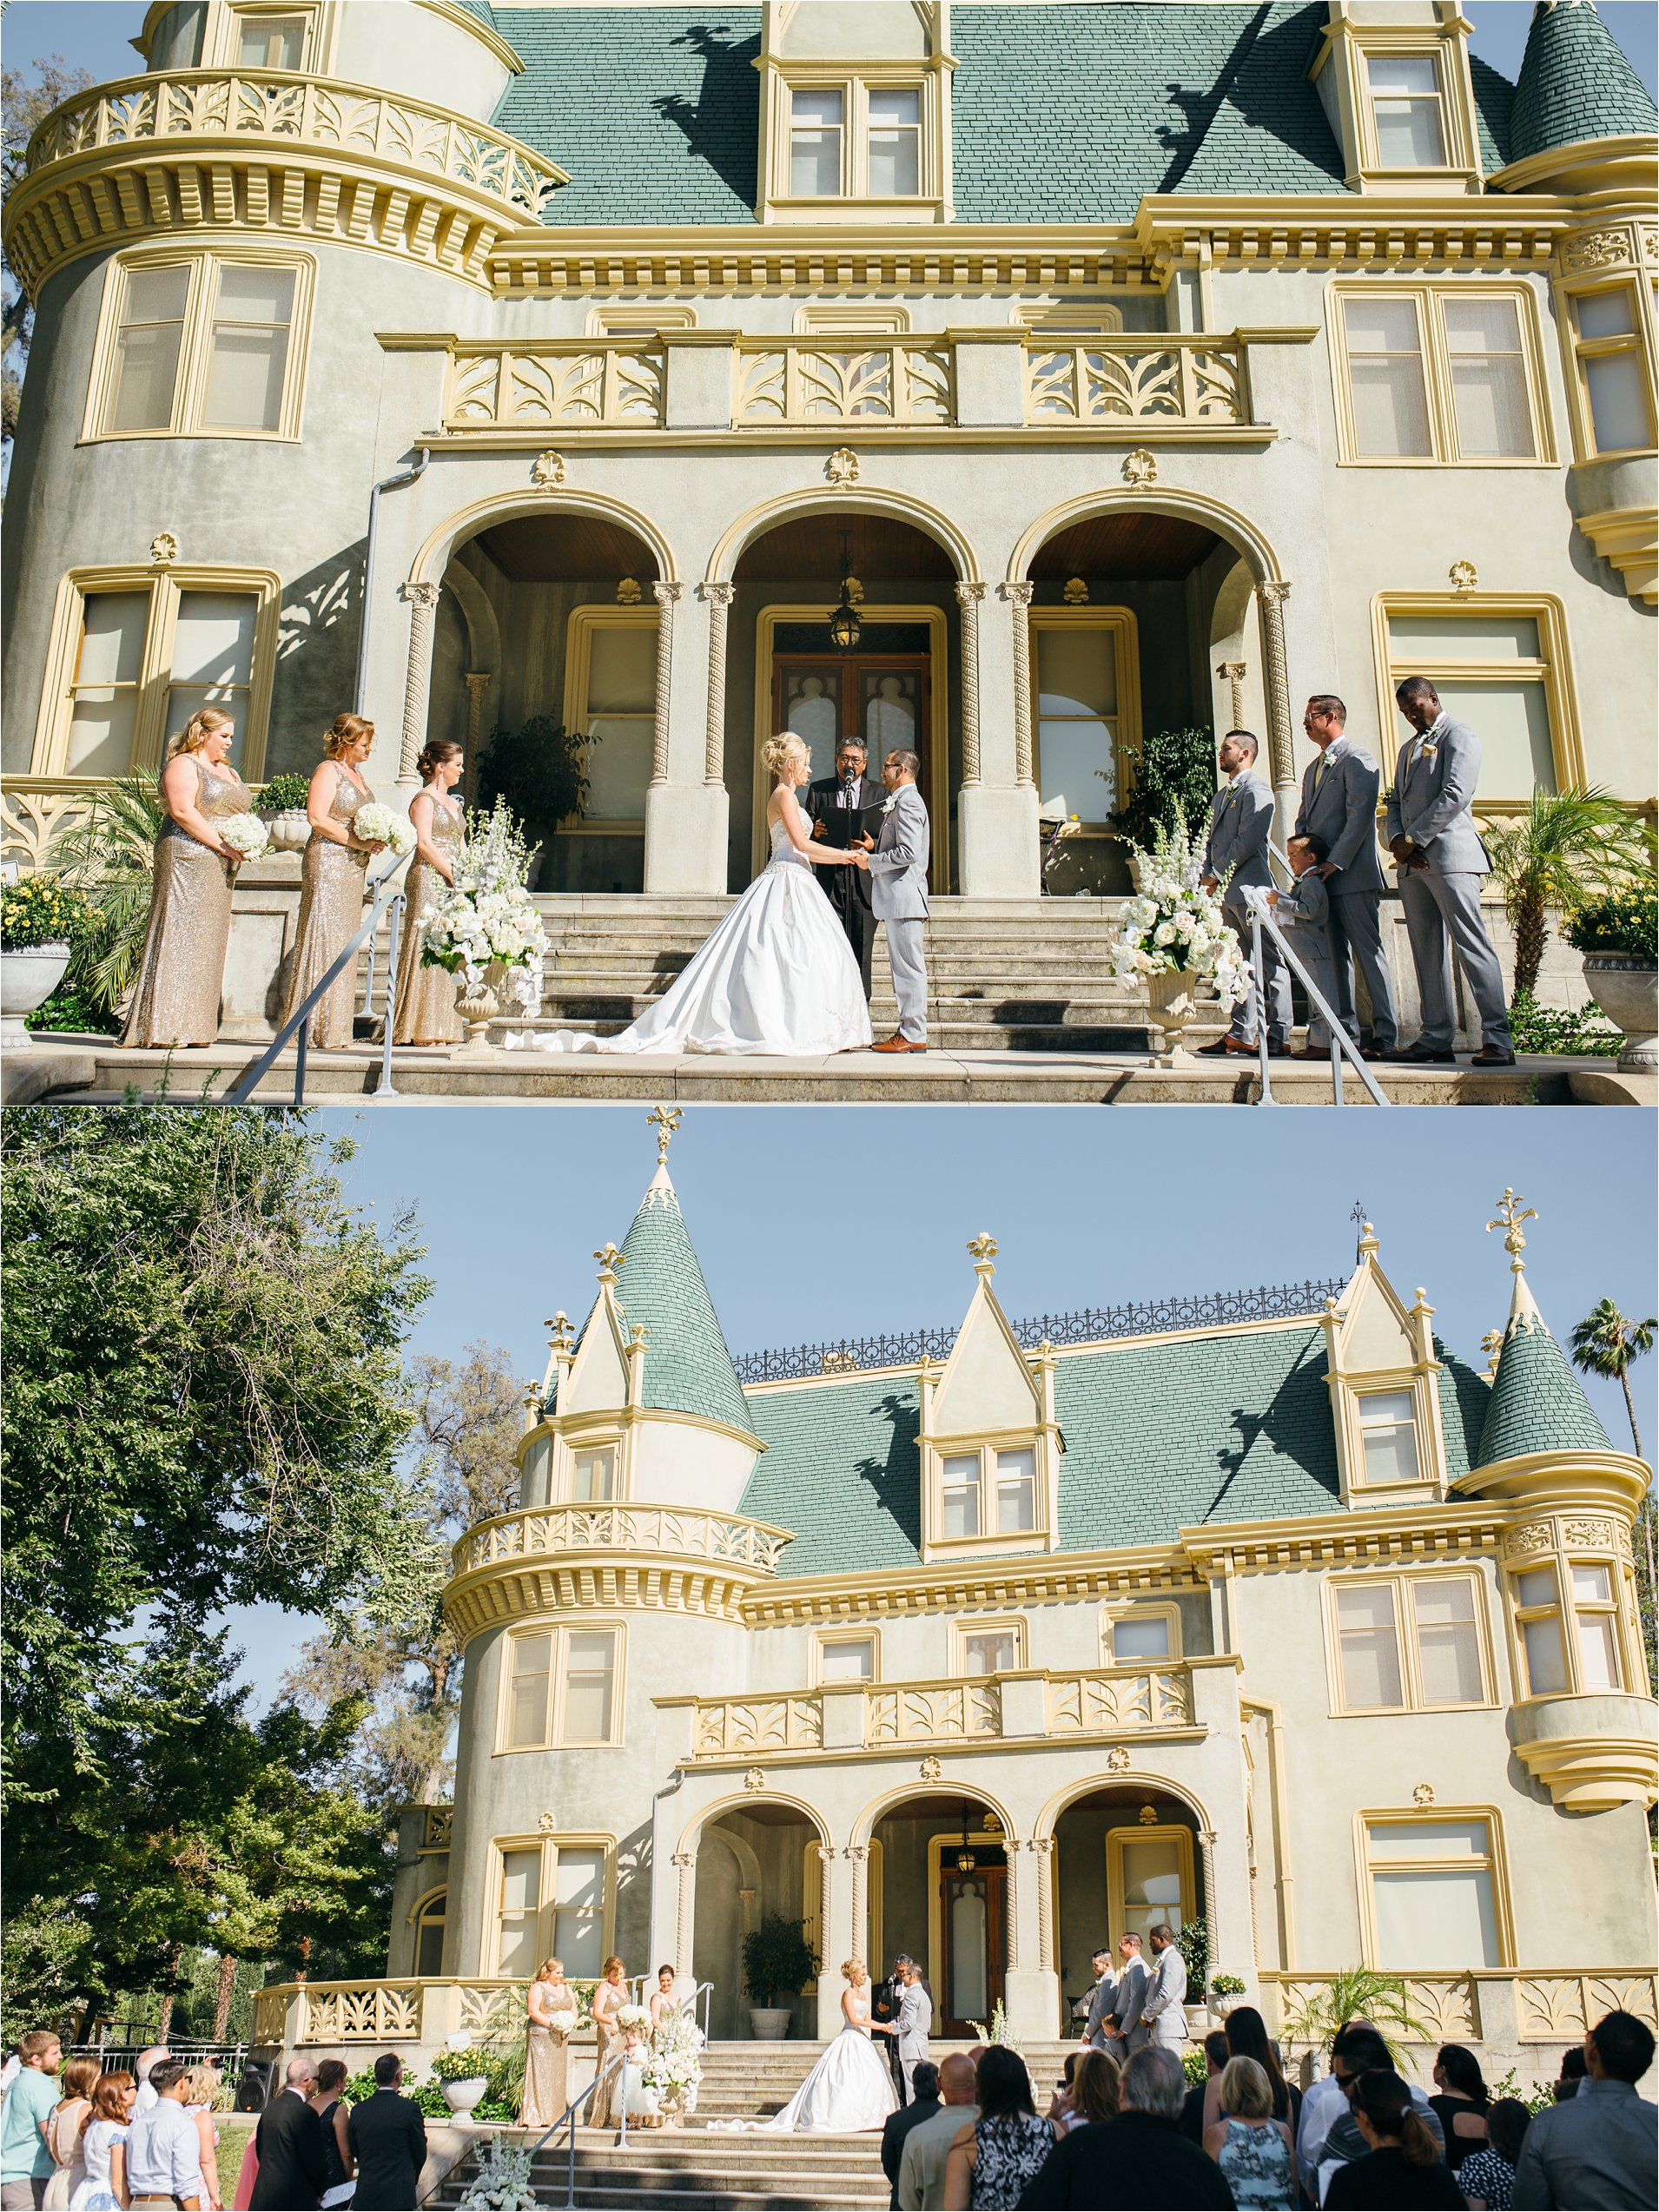 Redlands Wedding at the Kimberly Crest - Redlands Wedding Photography